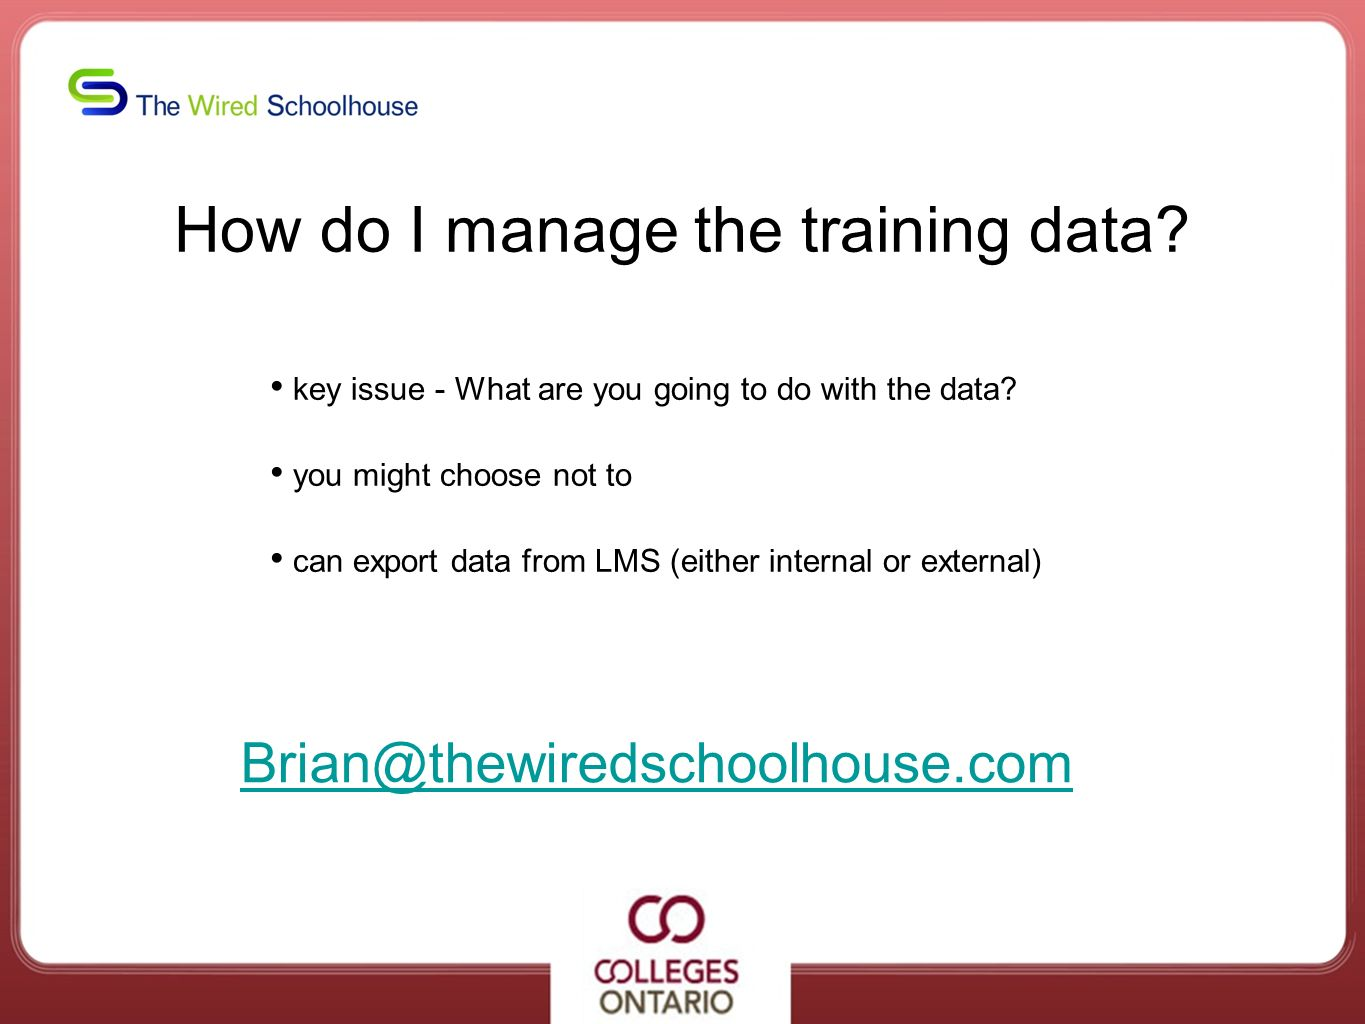 How do I manage the training data